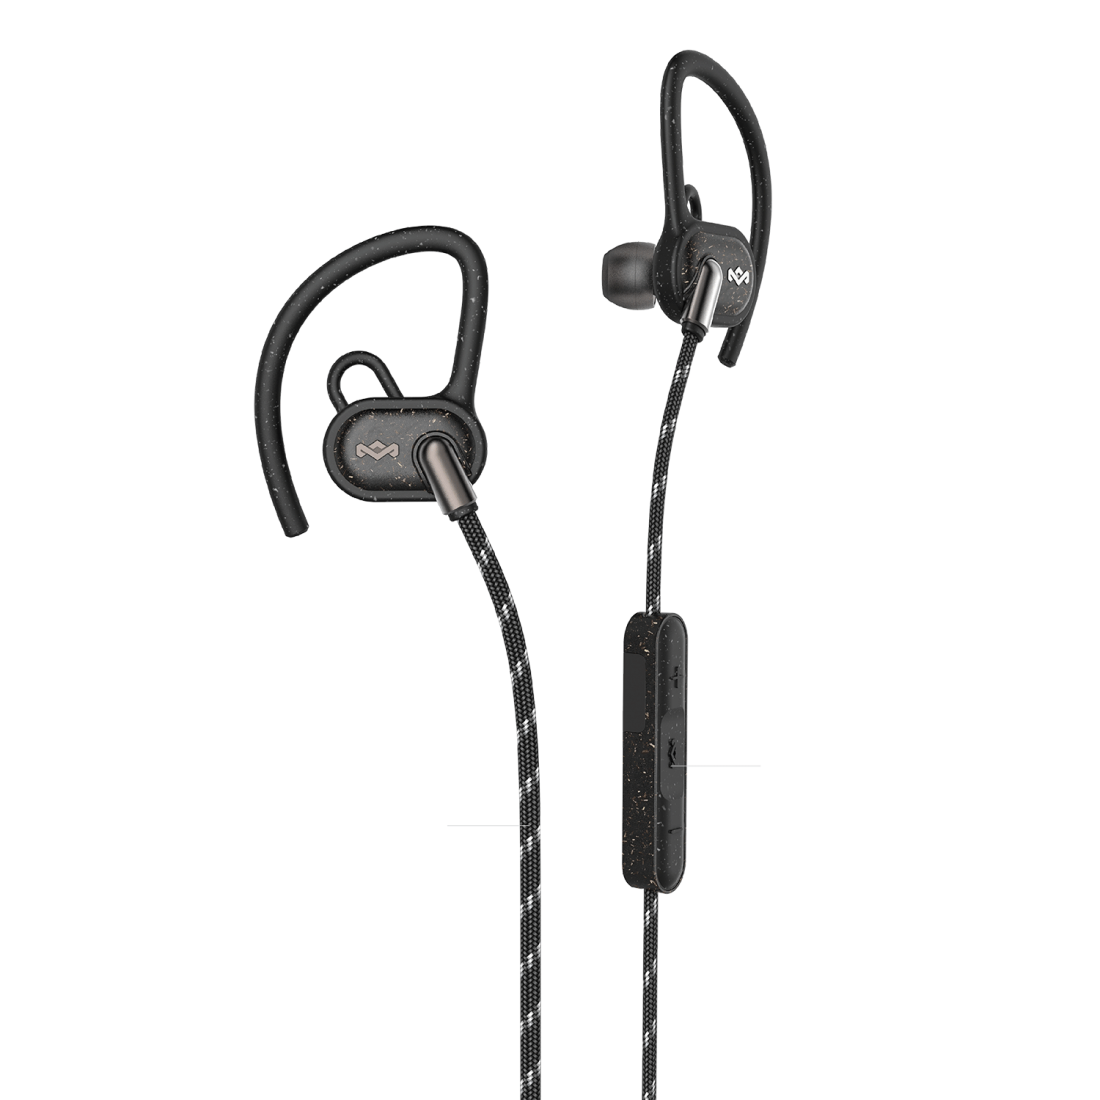 Uprise Wireless Bluetooth Earbuds | House of Marley